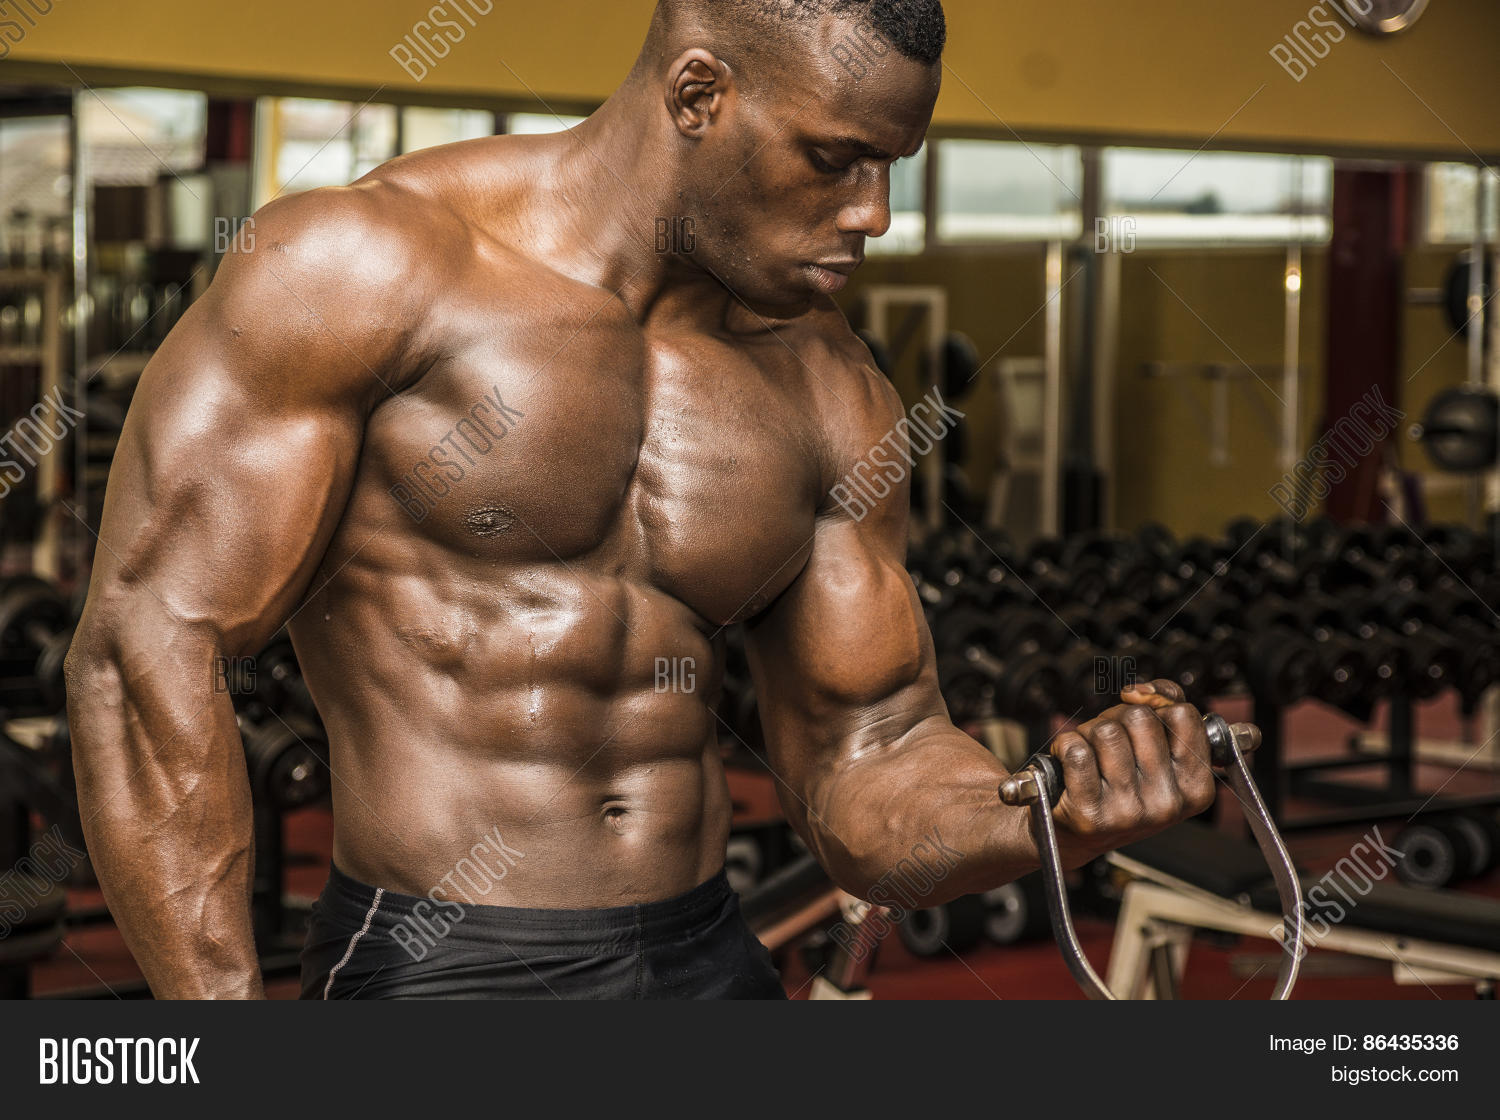 Hunky Muscular Black Bodybuilder Image & Photo | Bigstock